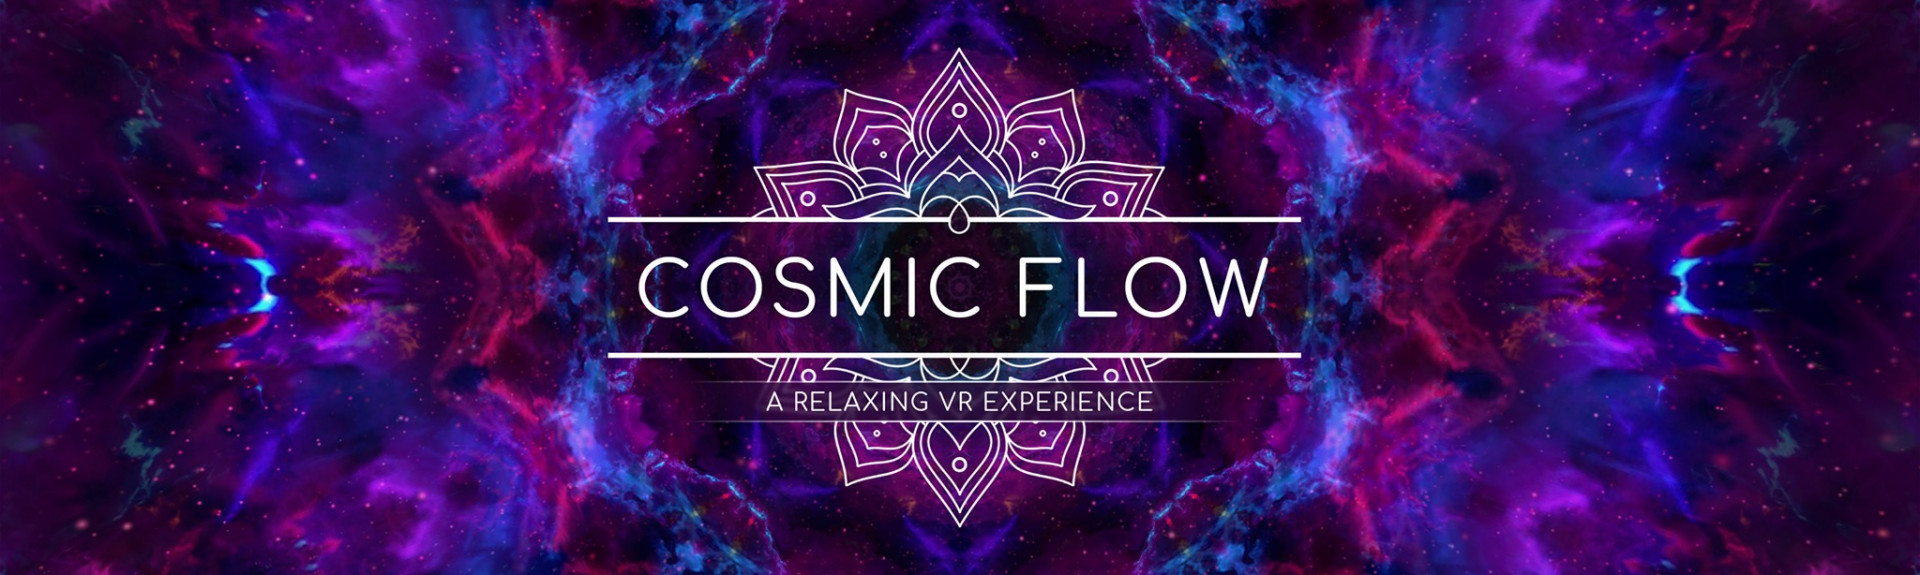 Cosmic Flow: A Relaxing VR Experience